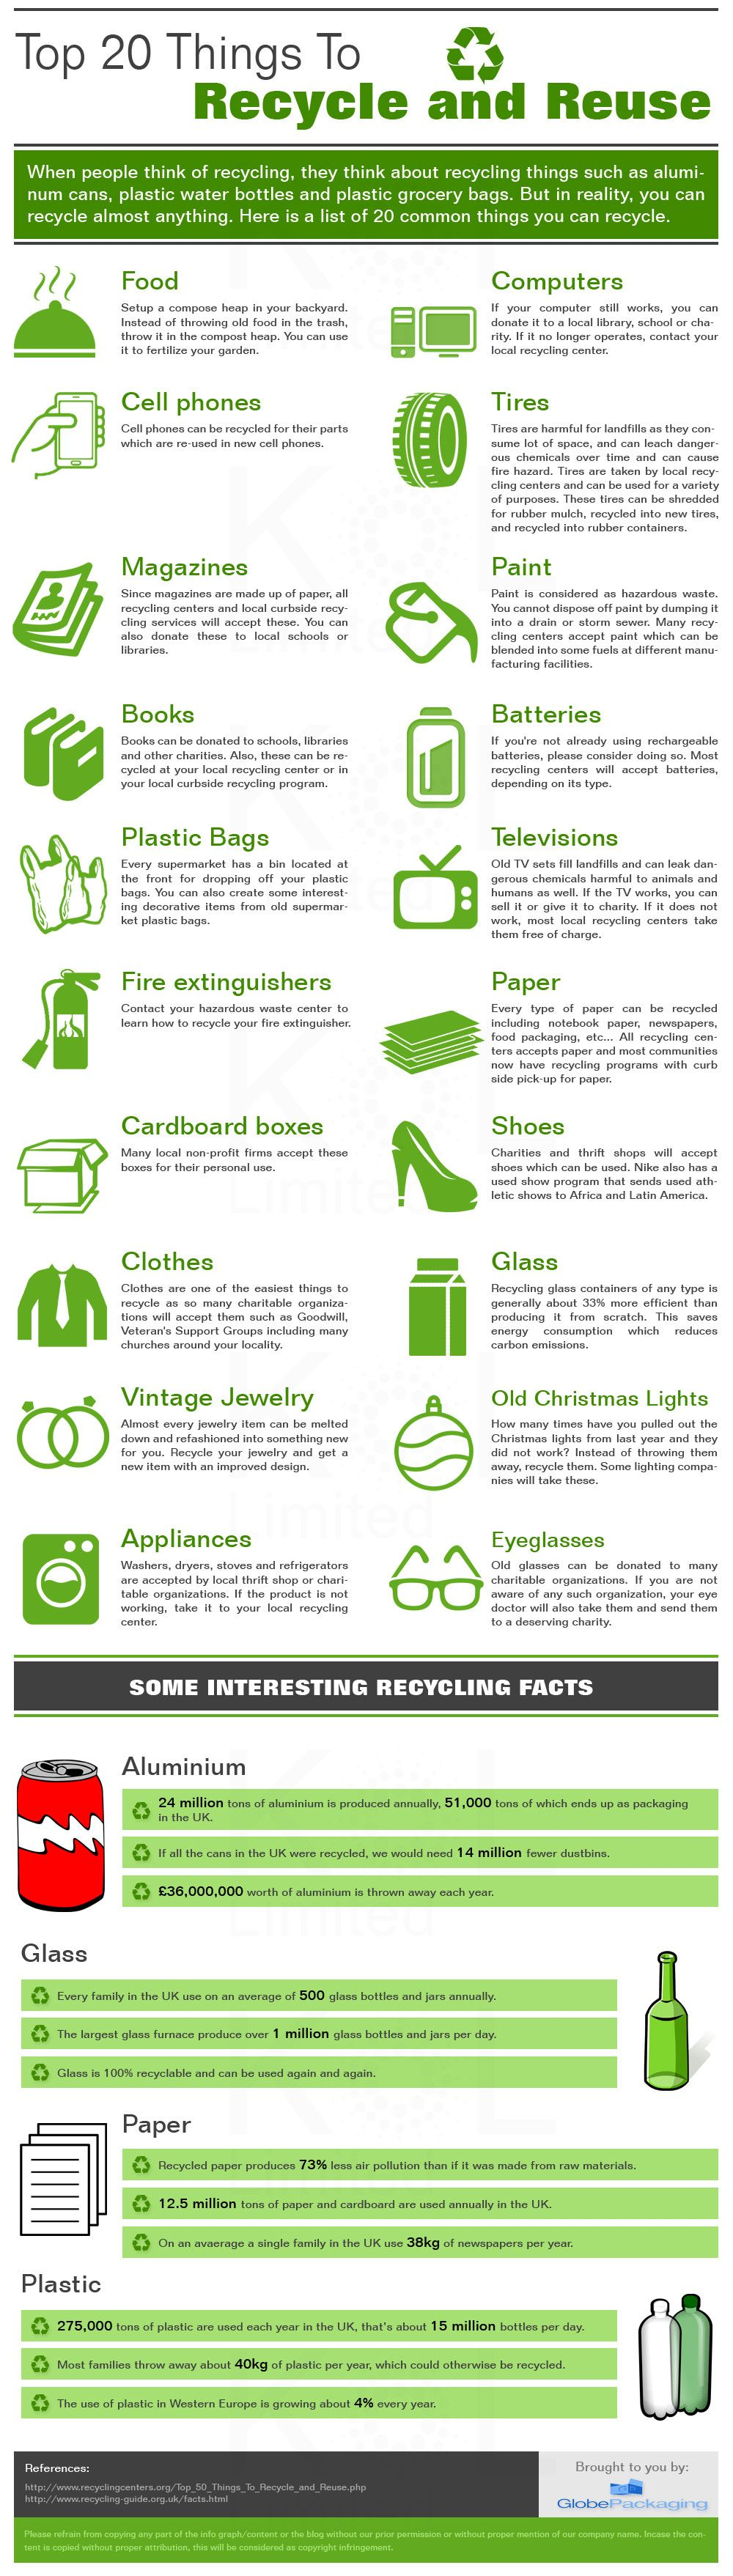 Top 20 Things To Recycle And Reuse Infographic Recycling Recycling Facts Recycling Information